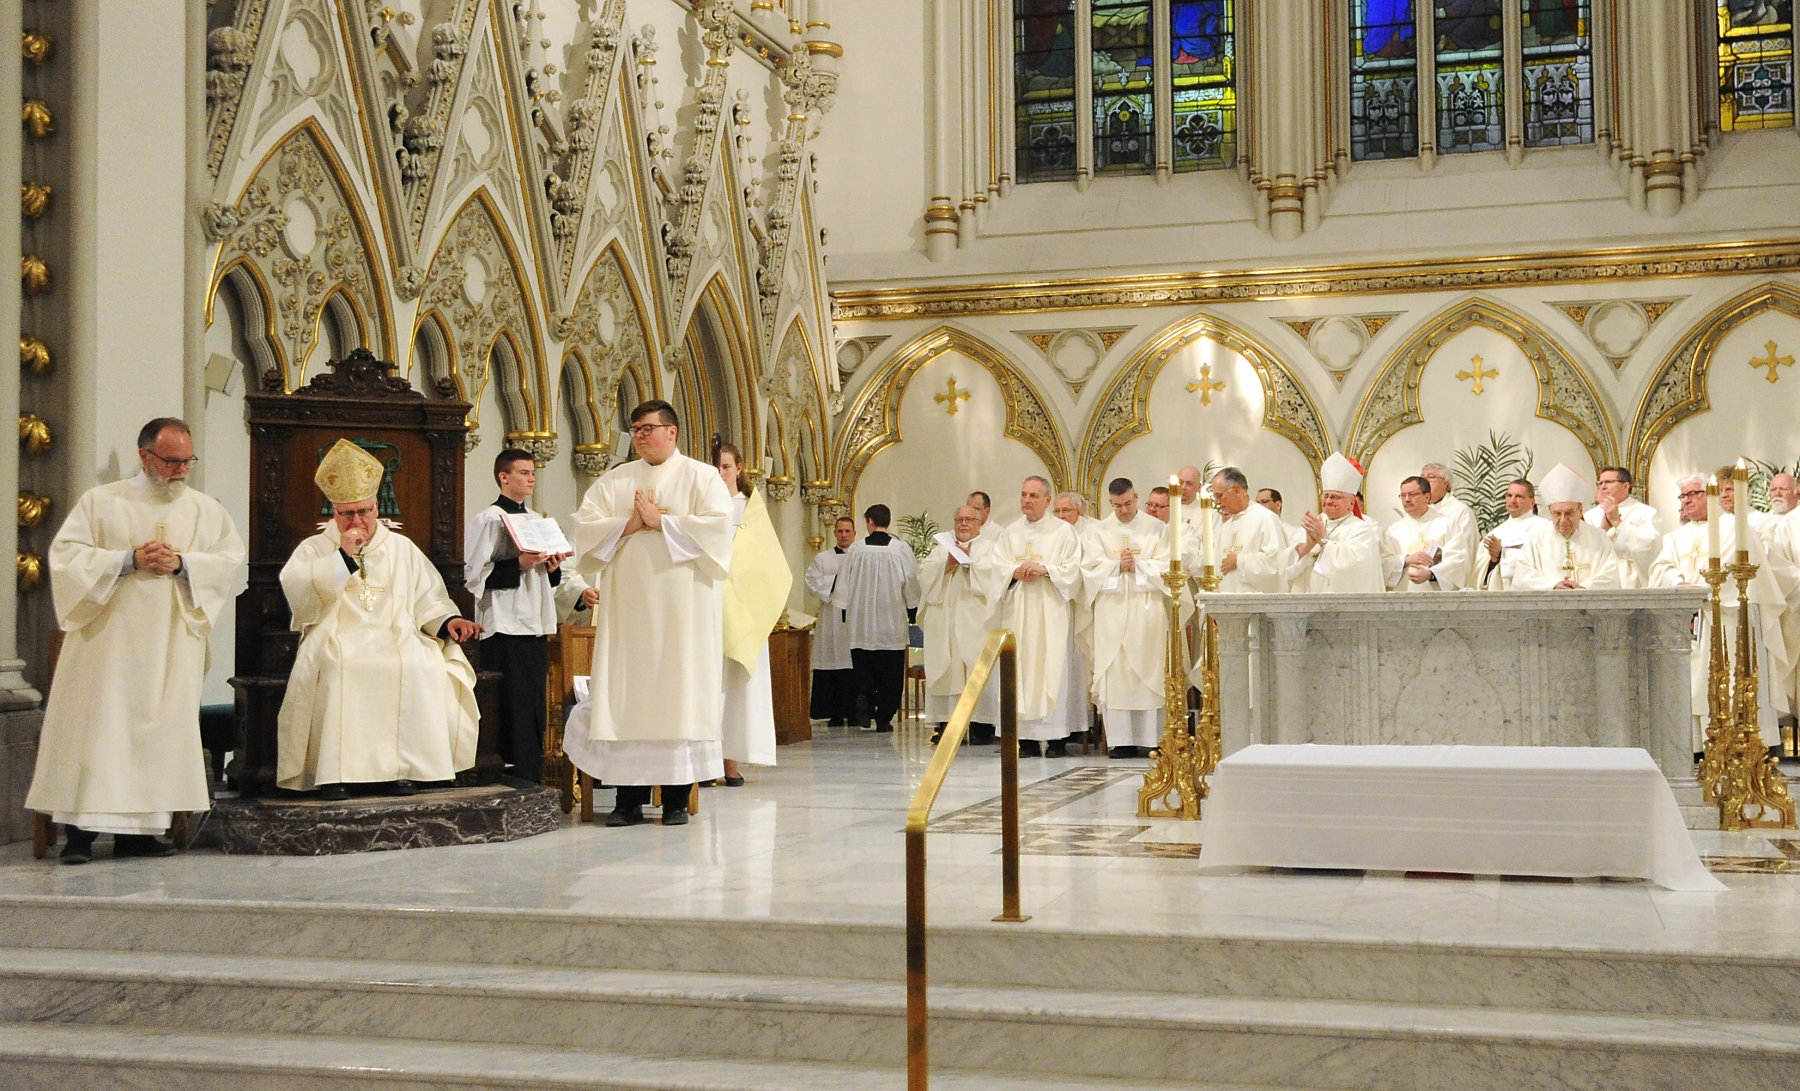 Bishop Richard J. Malone gets a standing ovation from area priests and the faithful after his homily at St. Joseph Cathedral at The Chrism Mass. Dan Cappellazzo/Staff photographer